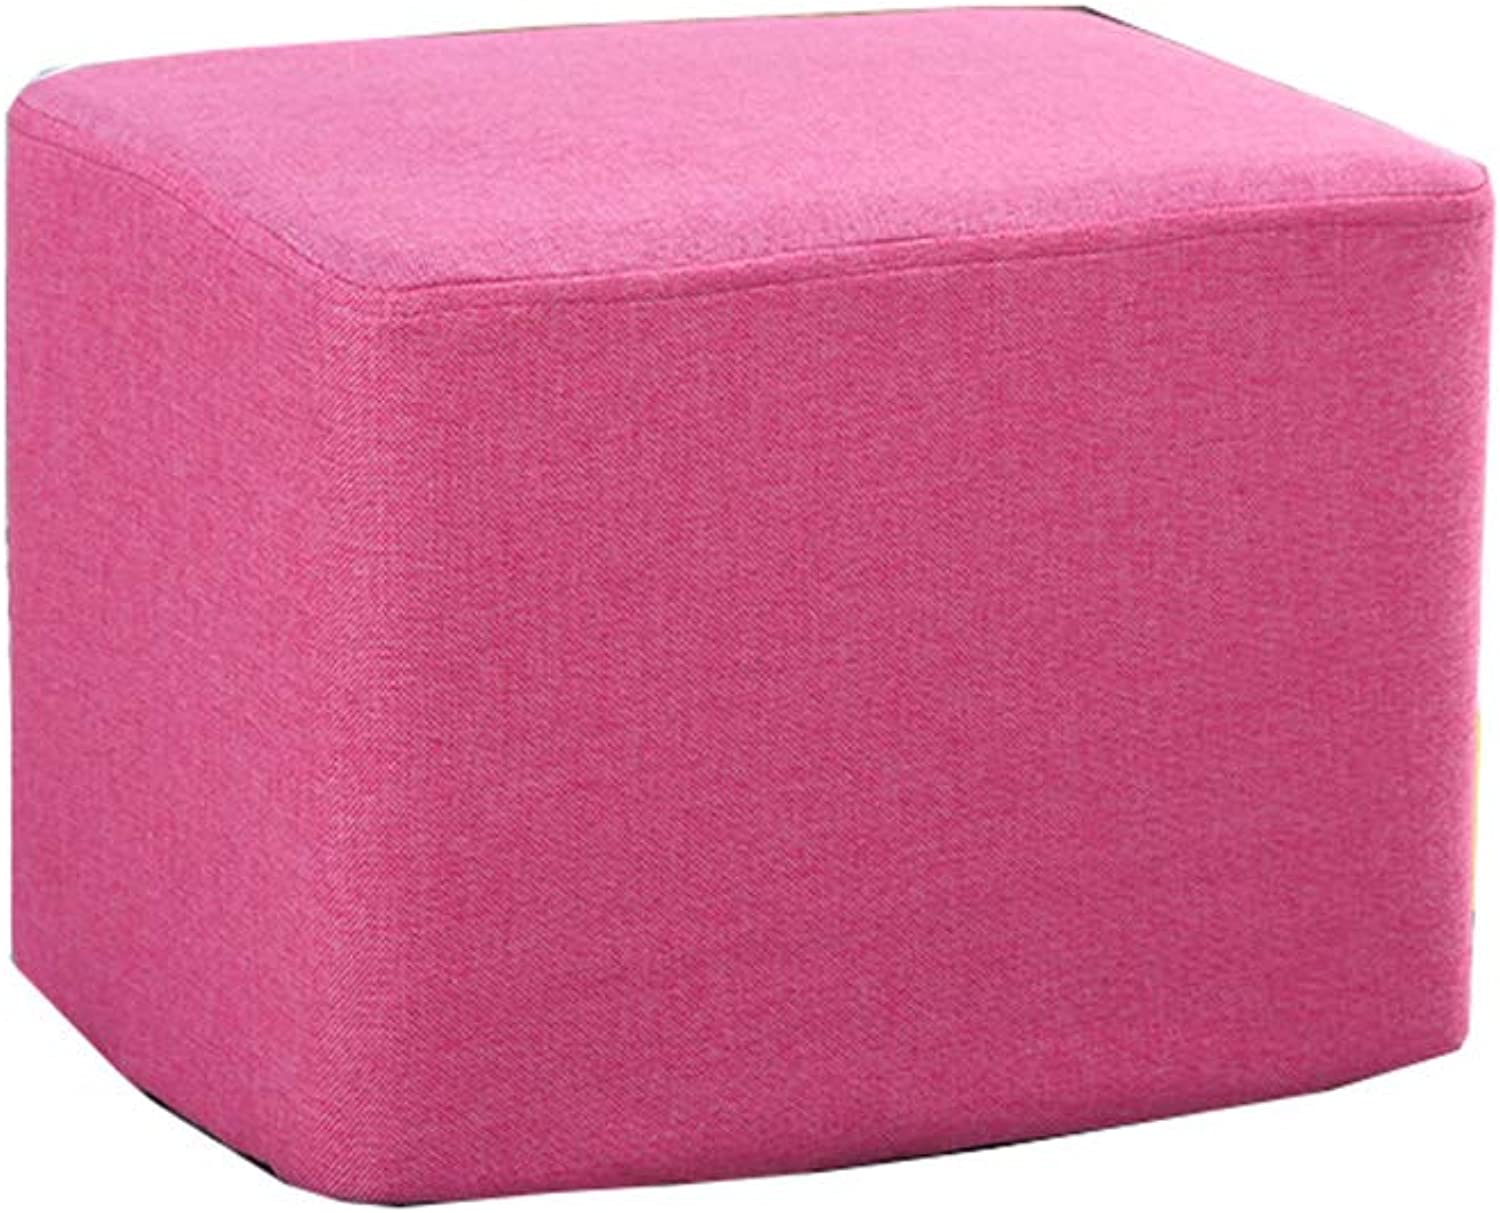 Pink Solid Wood Sofa Bench Change shoes Bench Bedroom Cloth Bed End Stool Osman Fashion Makeup Stool Stool Creative Stool (Size    1)